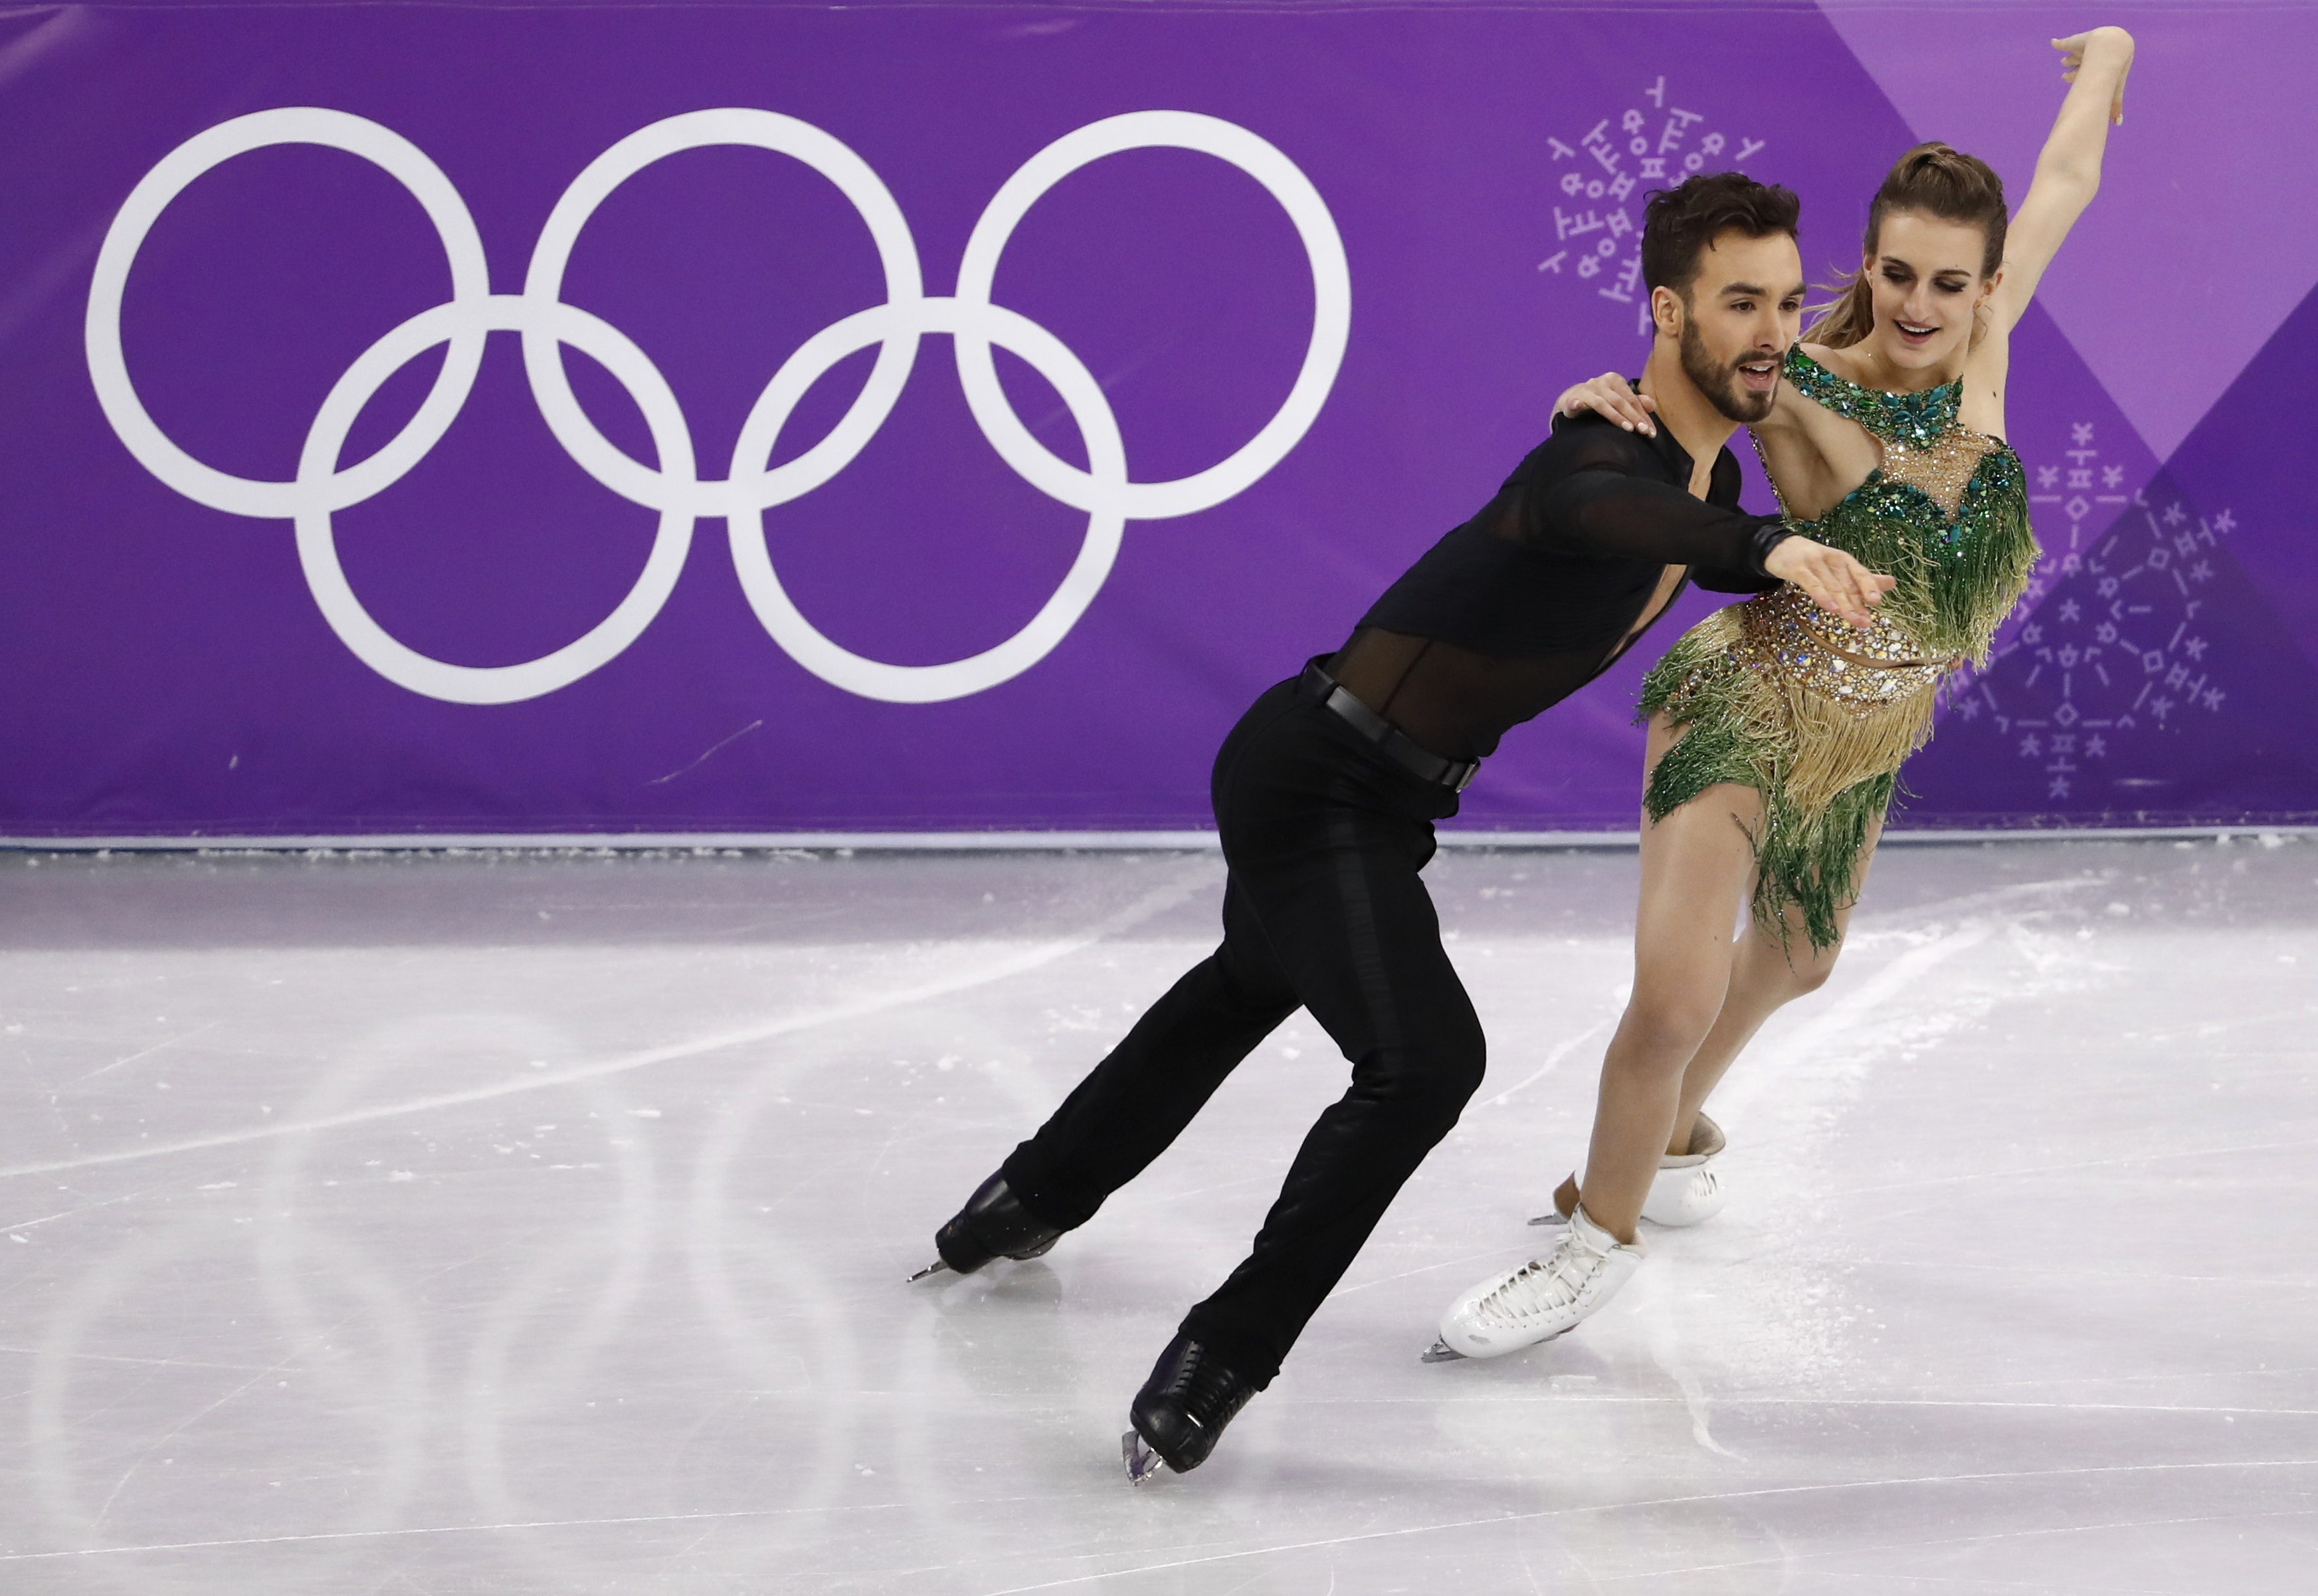 Guillaume Cizeron and Gabriella Papadakis of France perform in the                    Pyeongchang 2018 Winter Olympics at the Gangneung Ice Arena in Gangneung, South Korea on February 19, 2018.